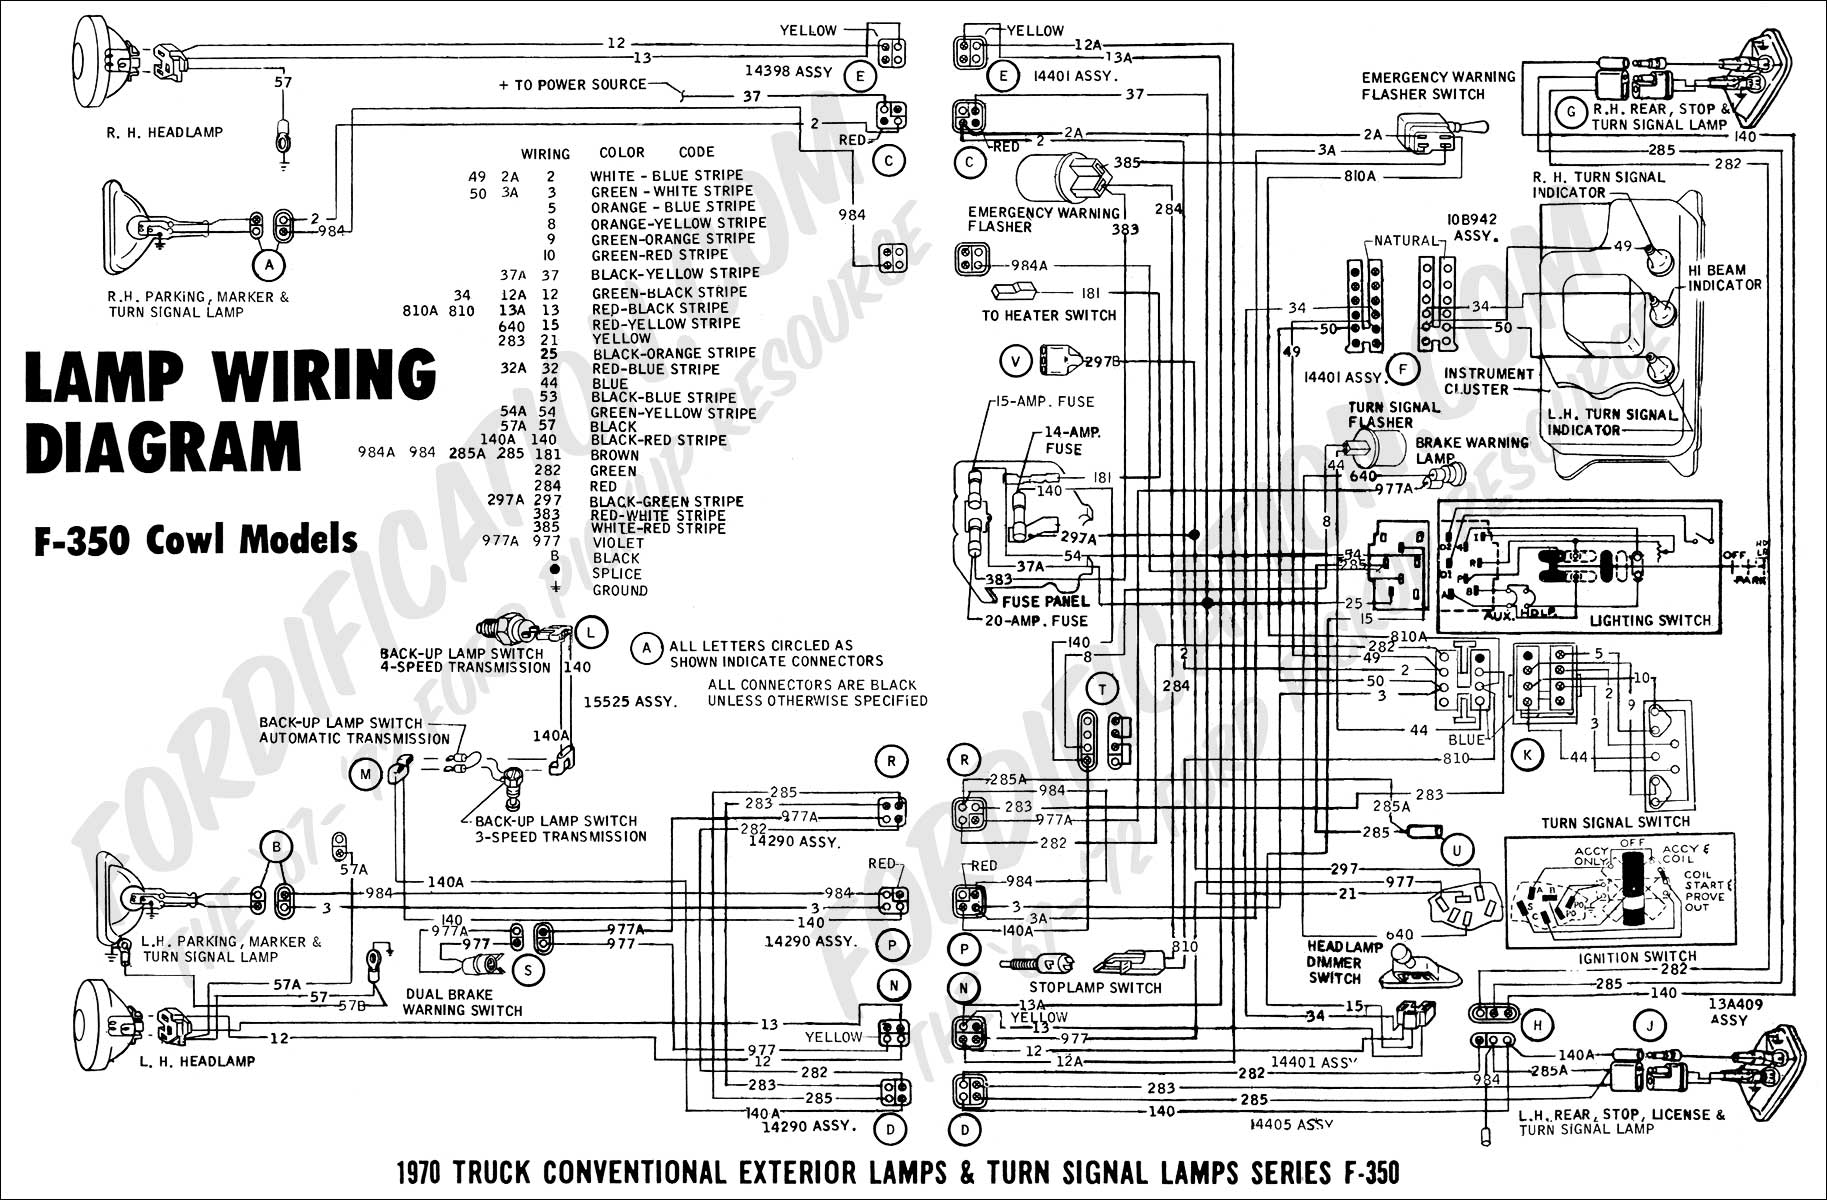 Ford Wiring Diagrams Diagram Data 2010 F 150 Stereo F250 Simple Radio F350 The Portal